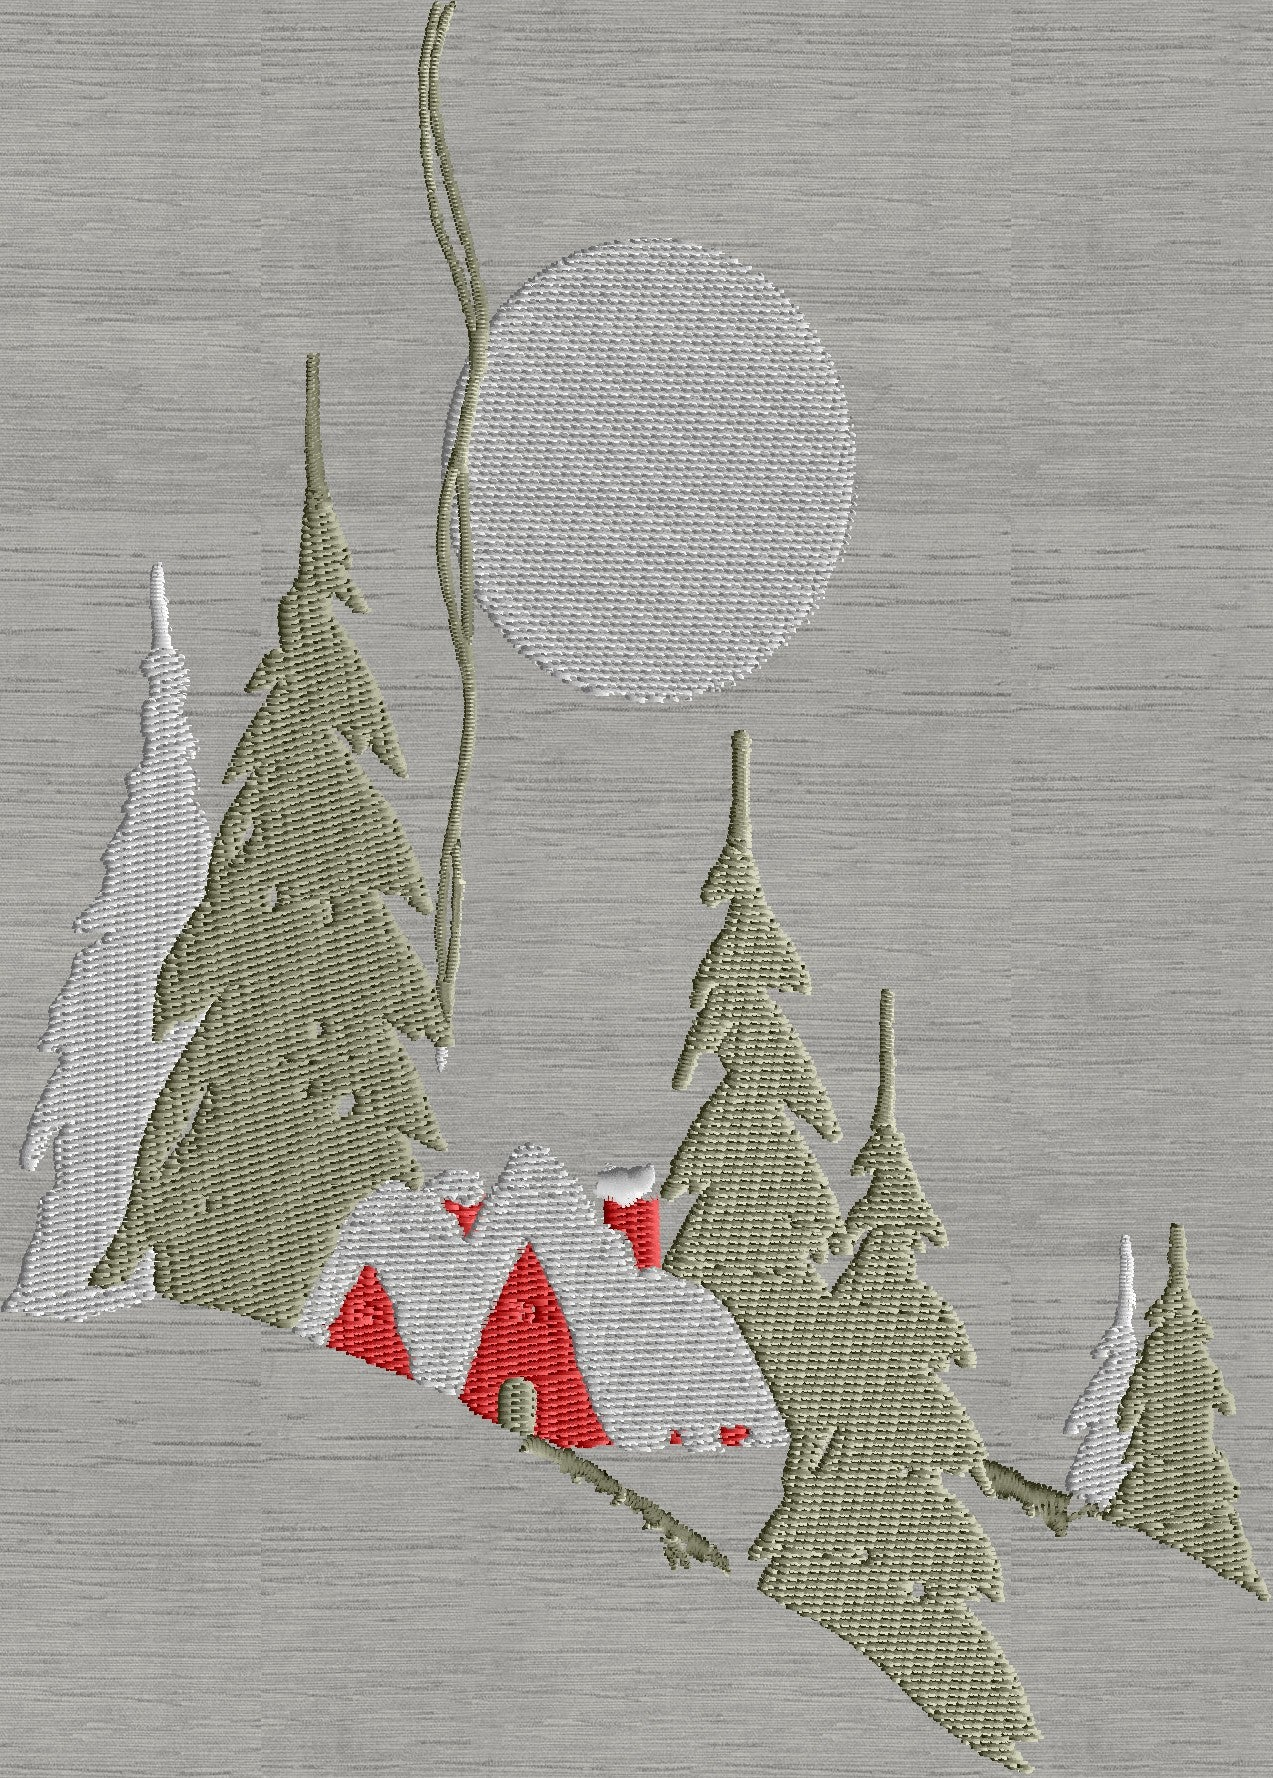 Christmas Village snow scene House Moon EMBROIDERY DESIGN FILE Instant download 5x7 frame or larger - Hus Exp Xp3 Dst Jef Pes formats